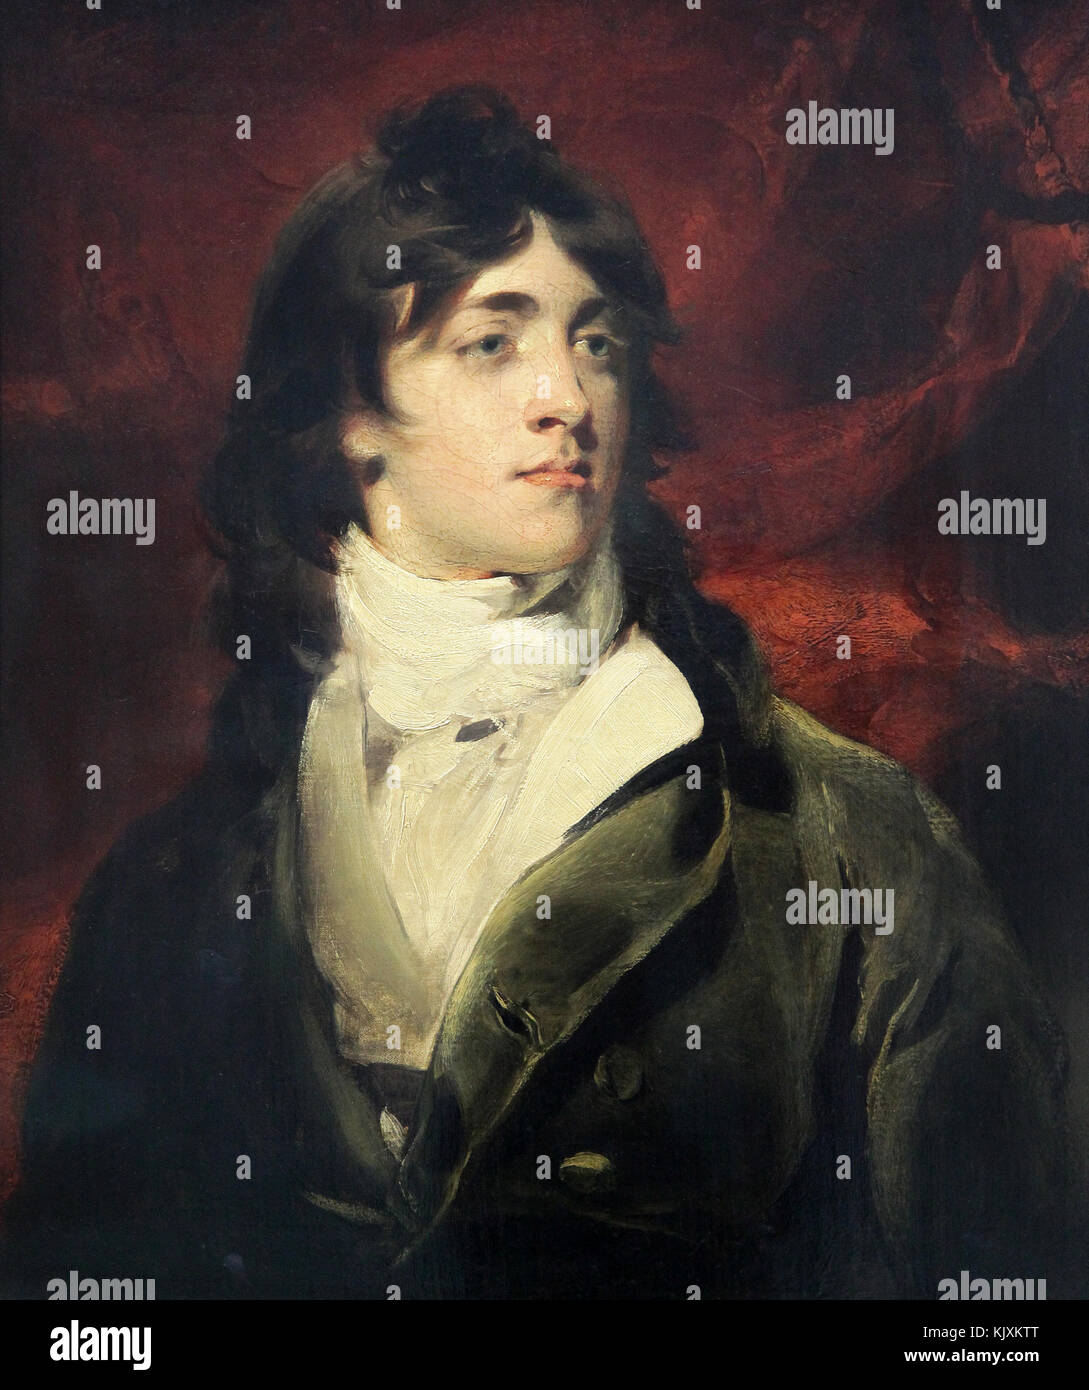 Portrait of Charles William Bell 1798 by Sir Thomas Lawrence (1769 – 1830) a English portrait painter - Stock Image